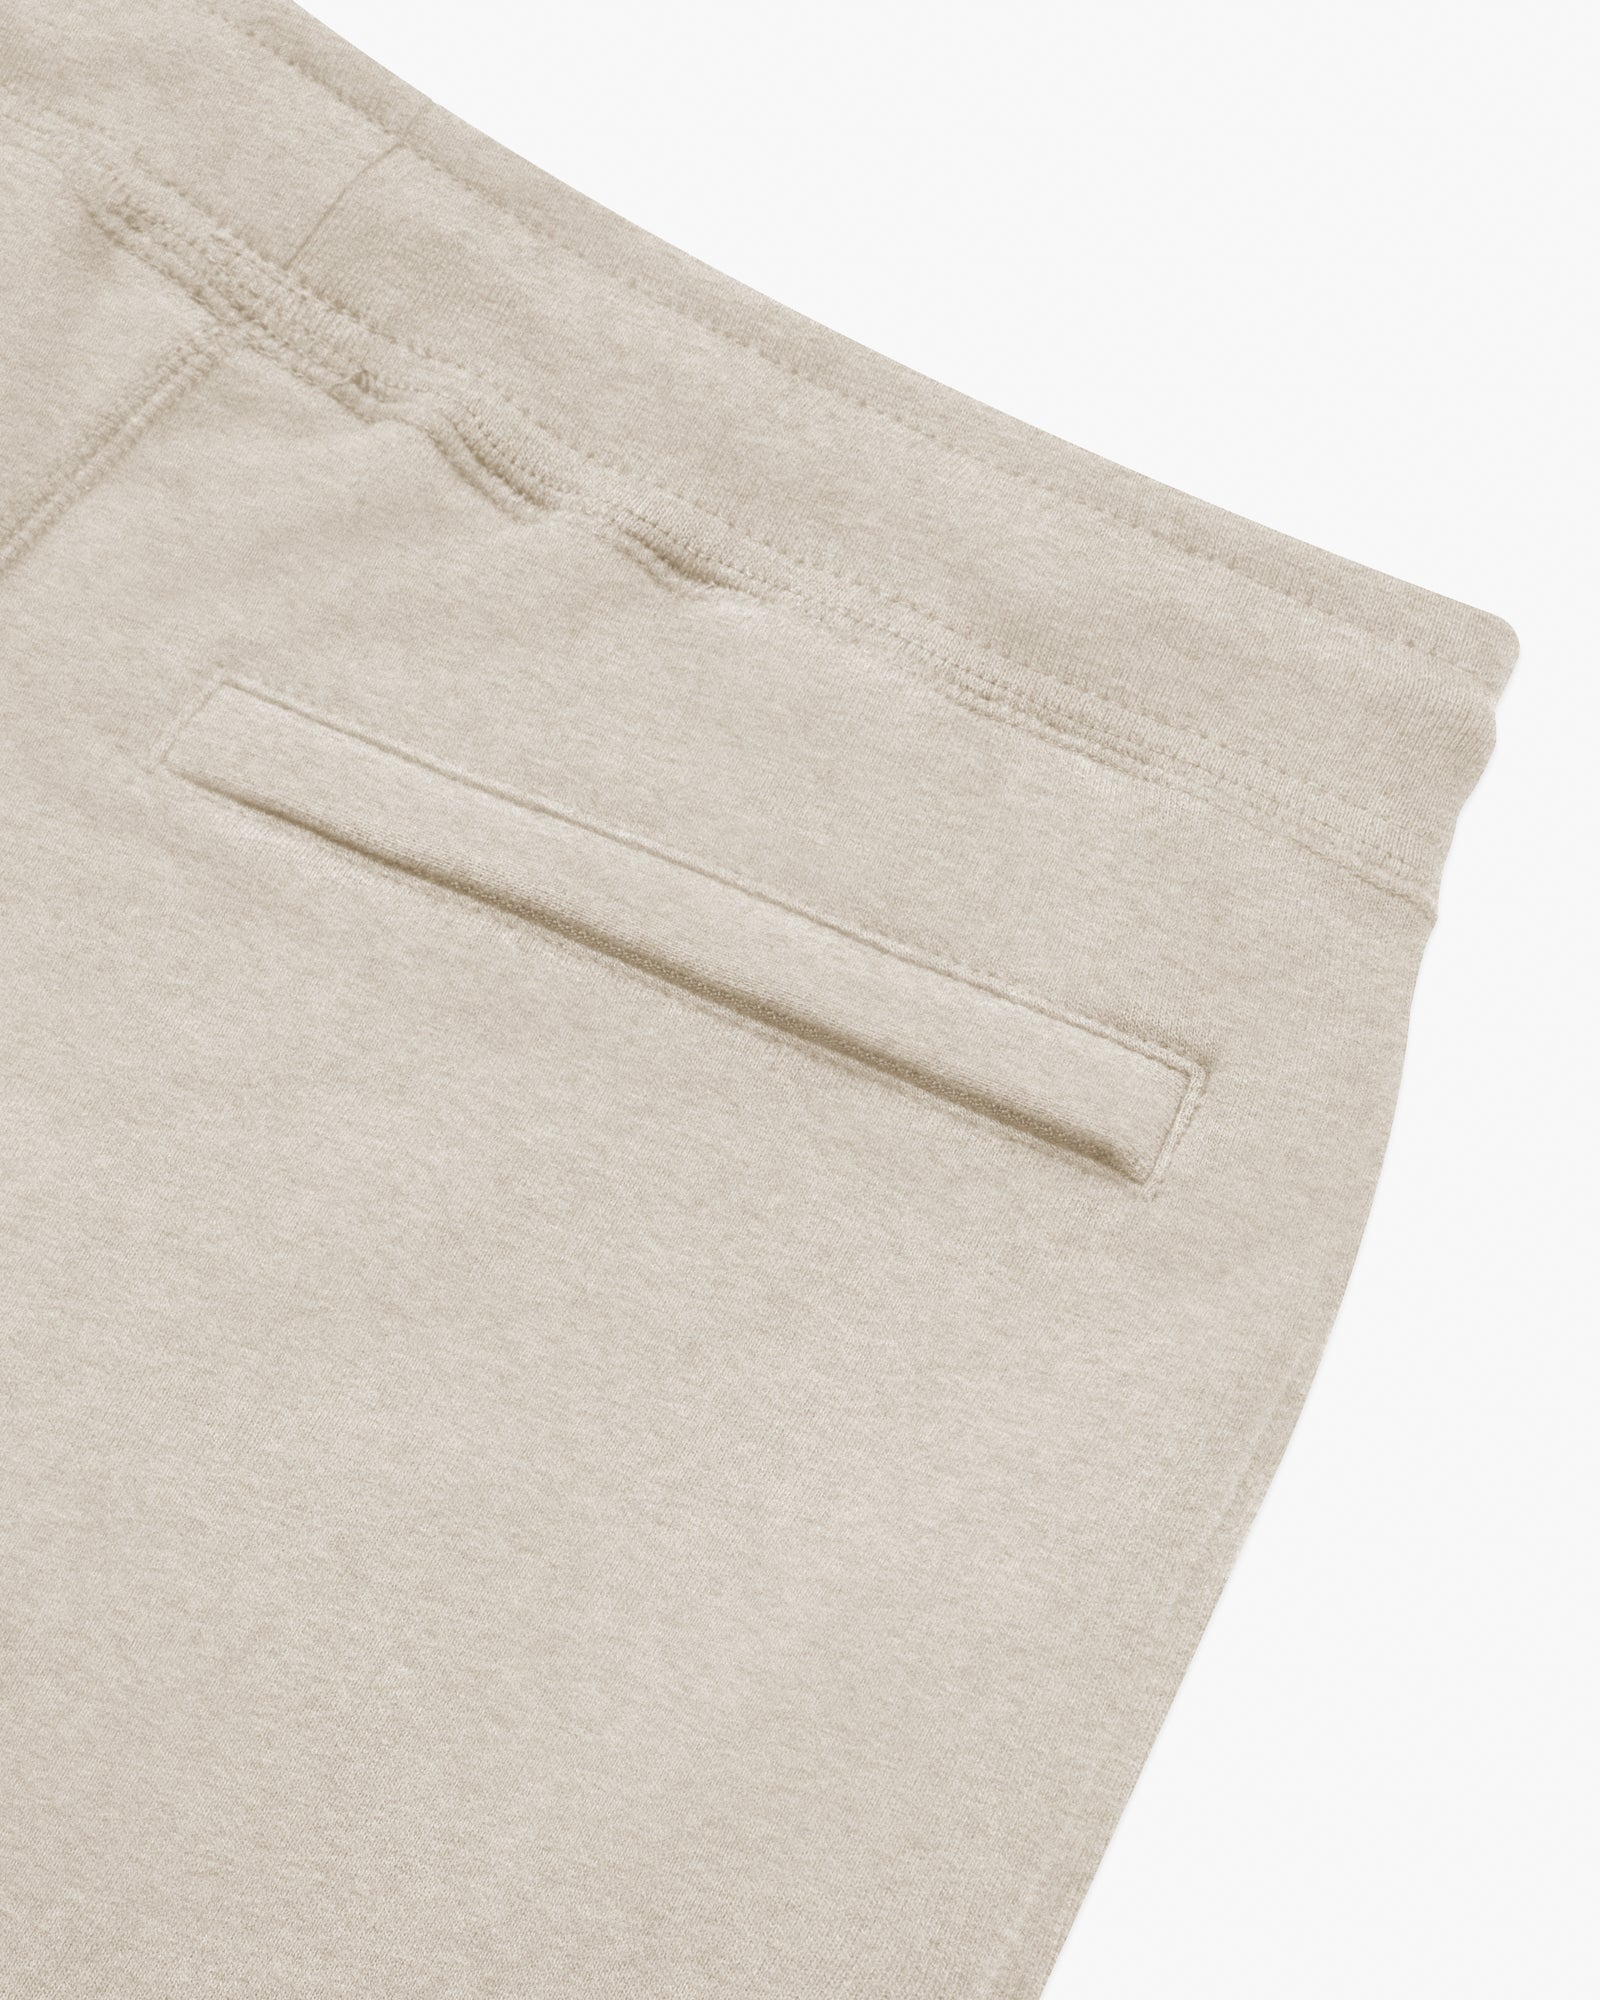 OVO OATMEAL FRENCH TERRY SWEATPANT - HEATHER OATMEAL IMAGE #5